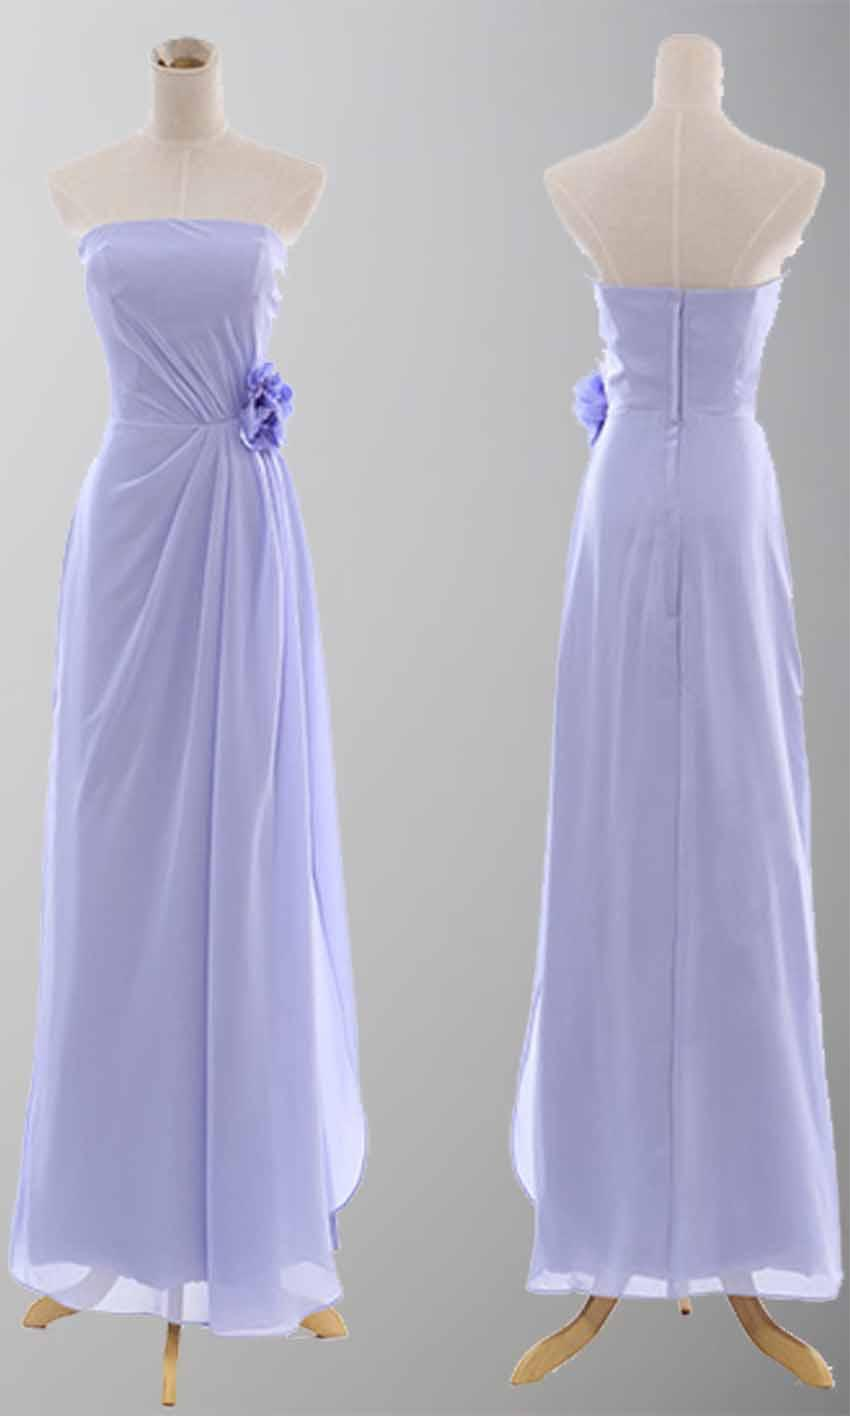 زفاف - Slit A-line Strapless Lilac Long Prom Dress KSP083 [KSP083] - £88.00 : Cheap Prom Dresses Uk, Bridesmaid Dresses, 2014 Prom & Evening Dresses, Look for cheap elegant prom dresses 2014, cocktail gowns, or dresses for special occasions? kissprom.co.uk offer